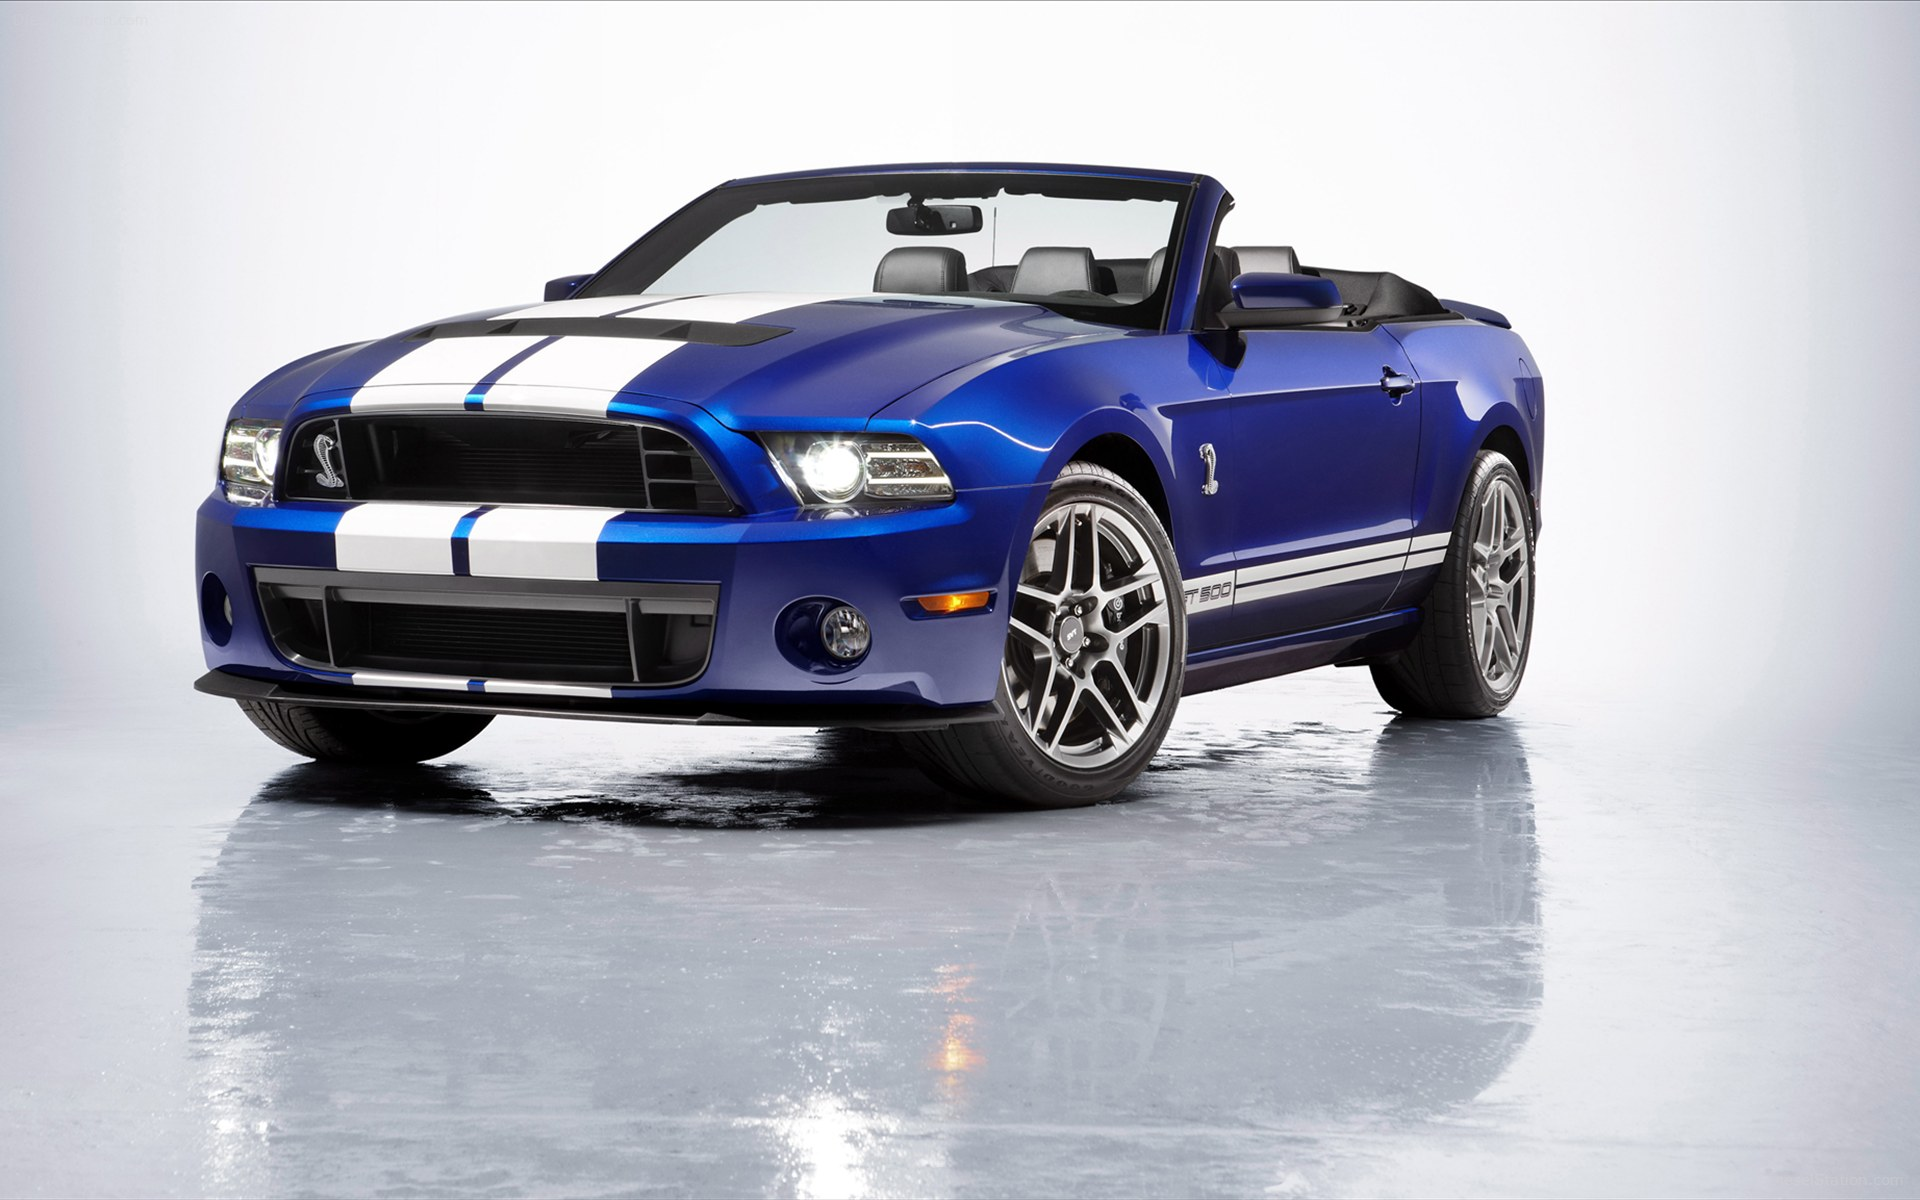 2013 Ford Shelby Mustang GT500 Convertible Wallpaper HD Car 1920x1200